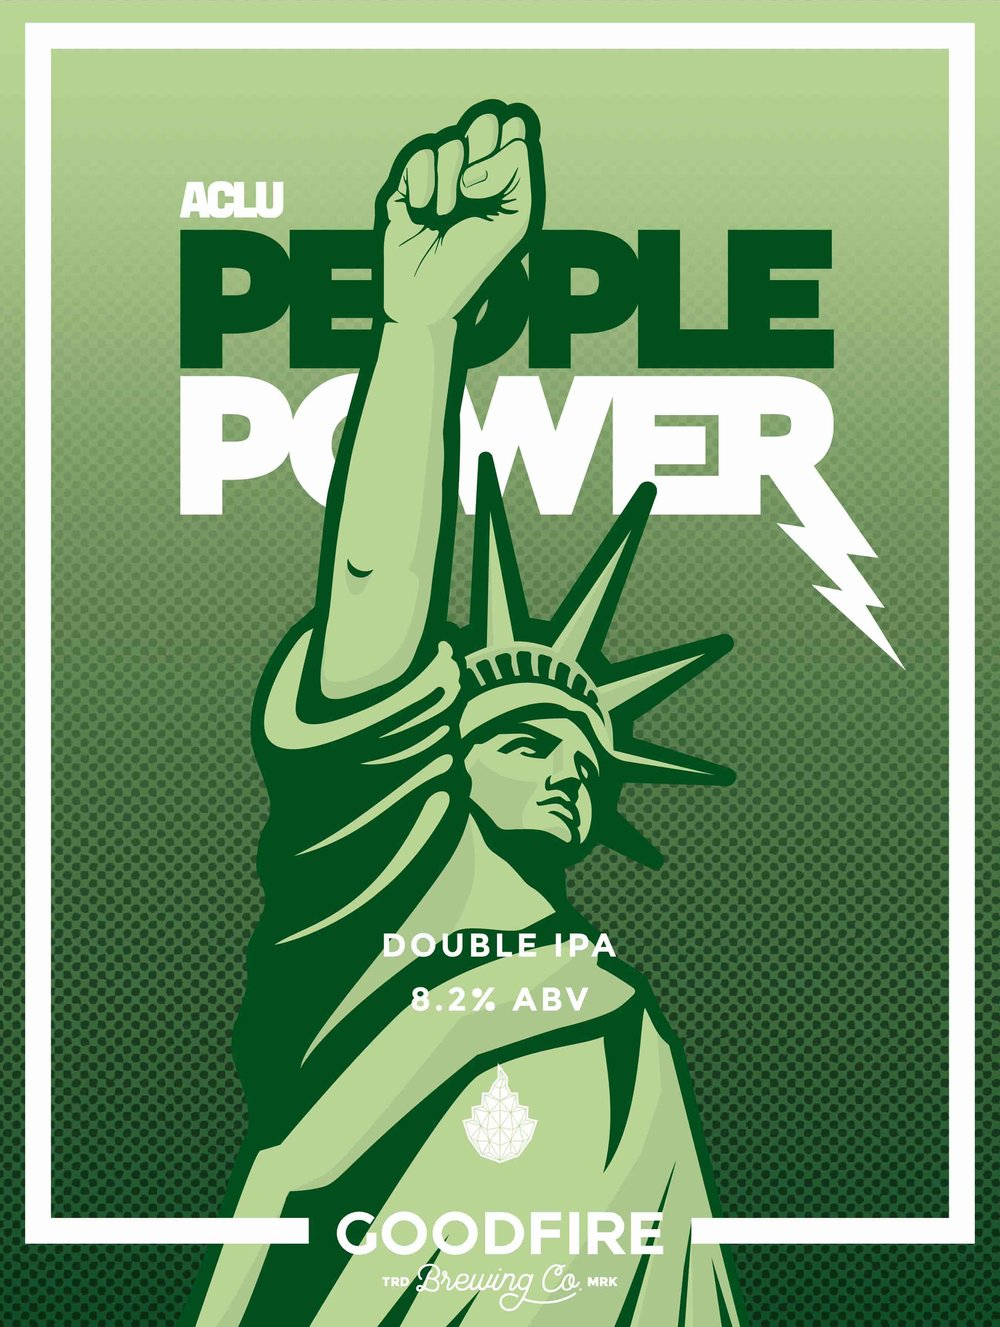 Goodfire People Power Poster-01.jpg